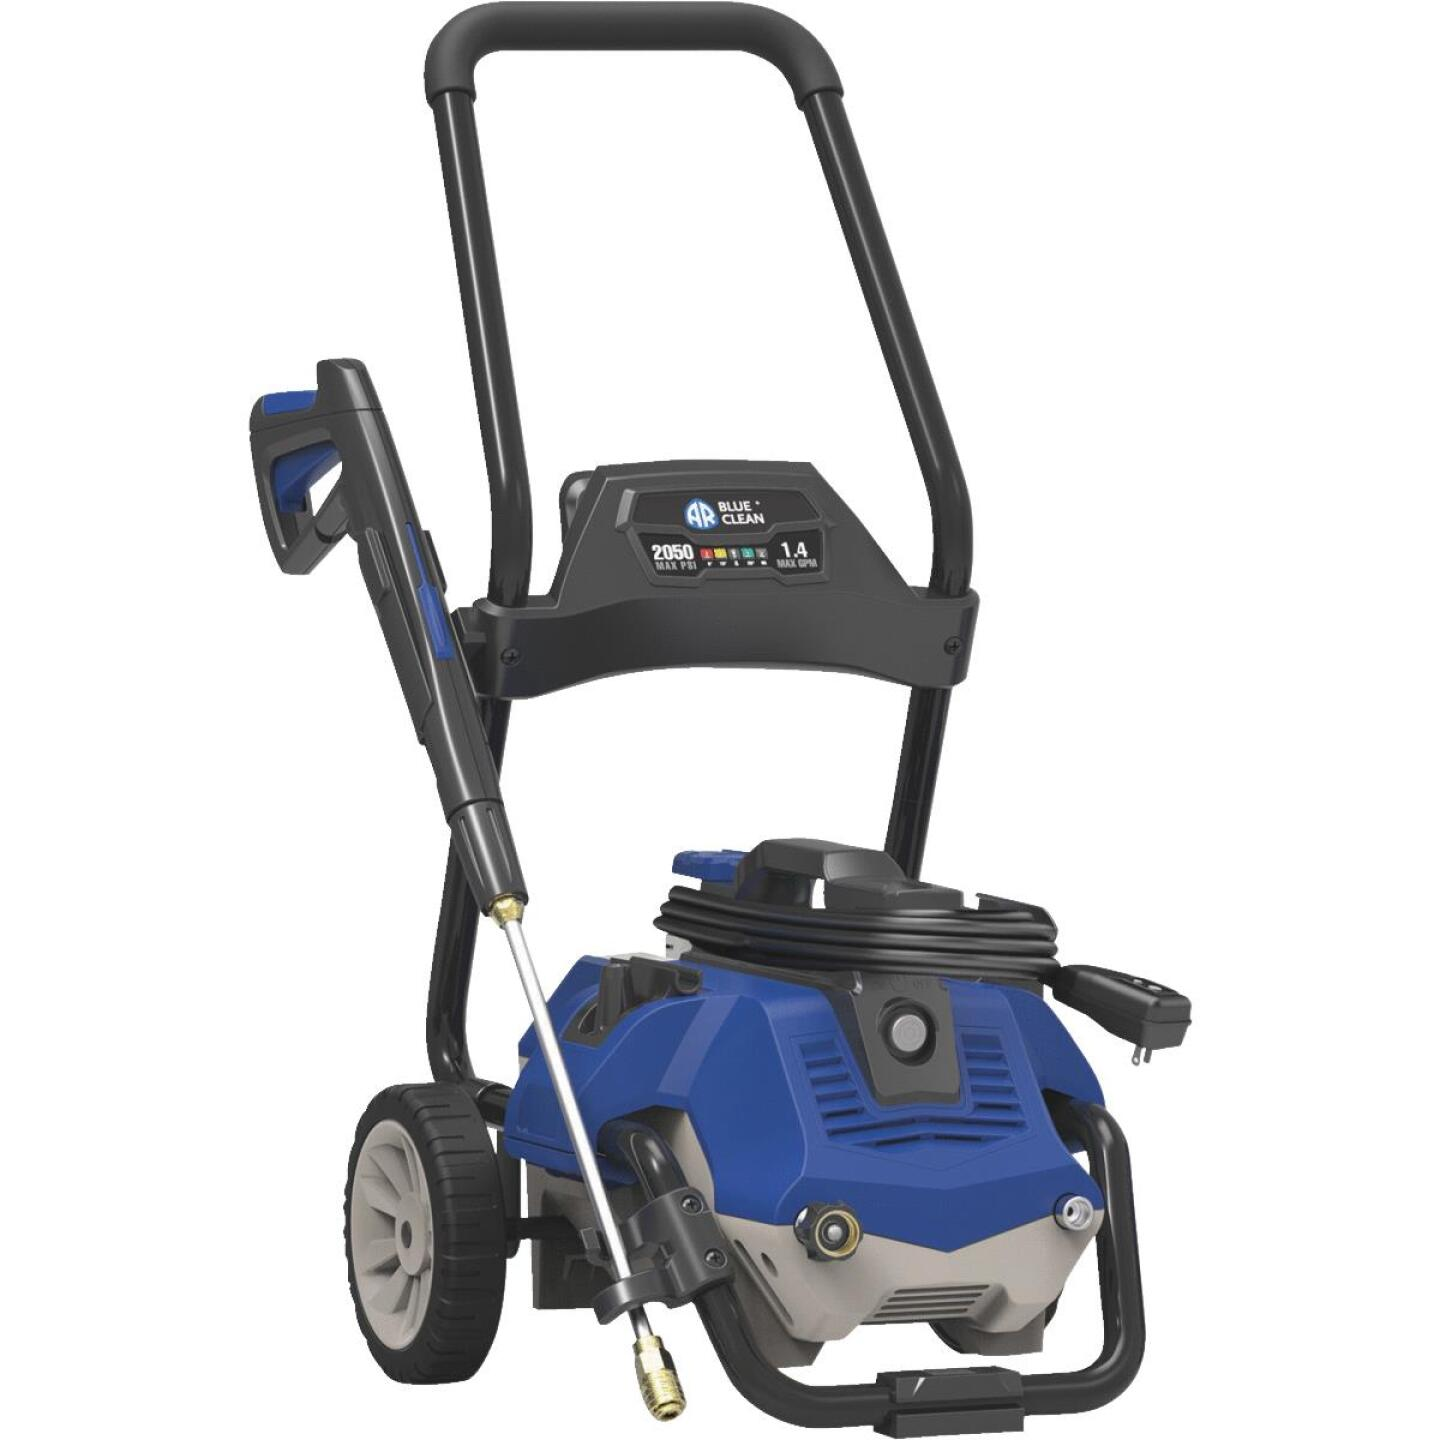 AR Blue Clean 2050 psi 1.4 GPM Cold Water Electric Pressure Washer Image 1